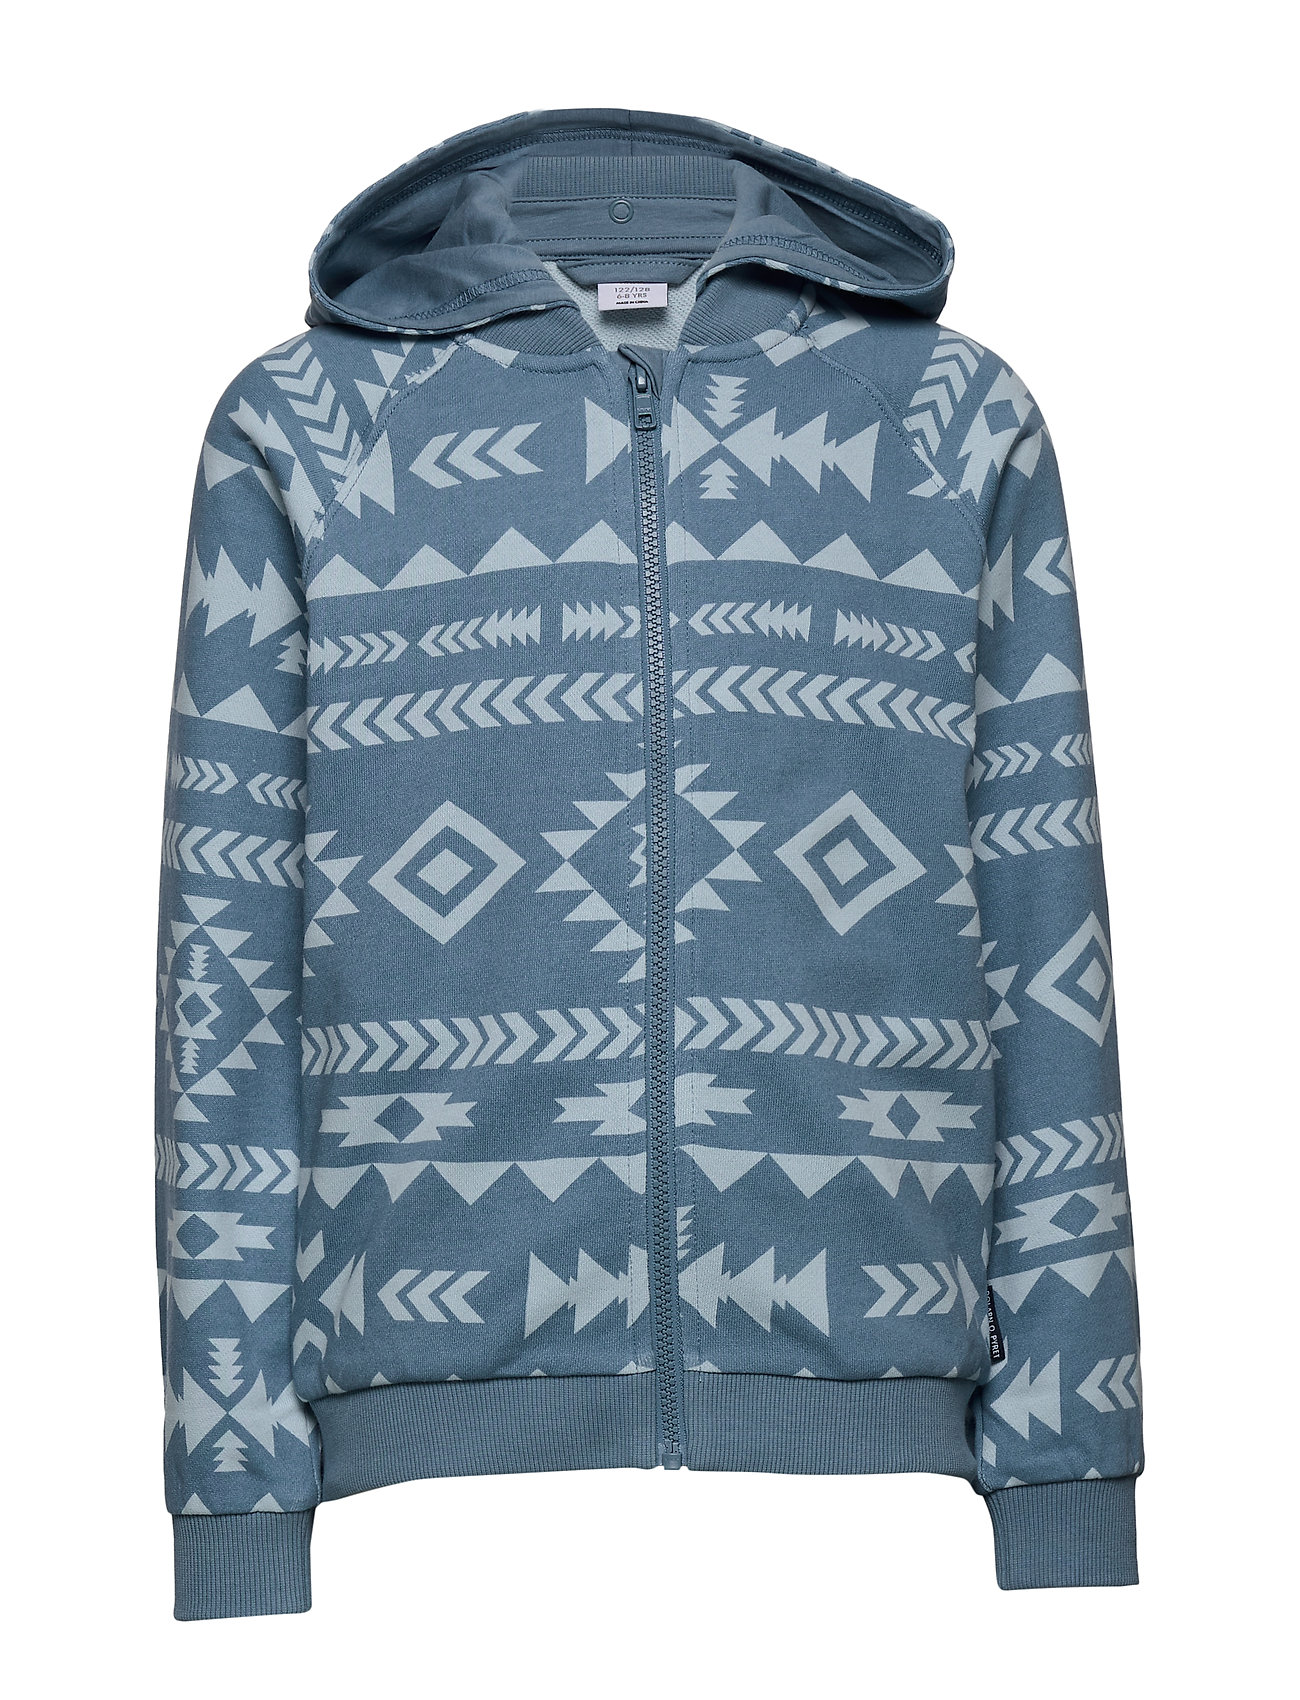 Polarn O. Pyret Zip Up l/s AOP hood School - BLUE HEAVEN